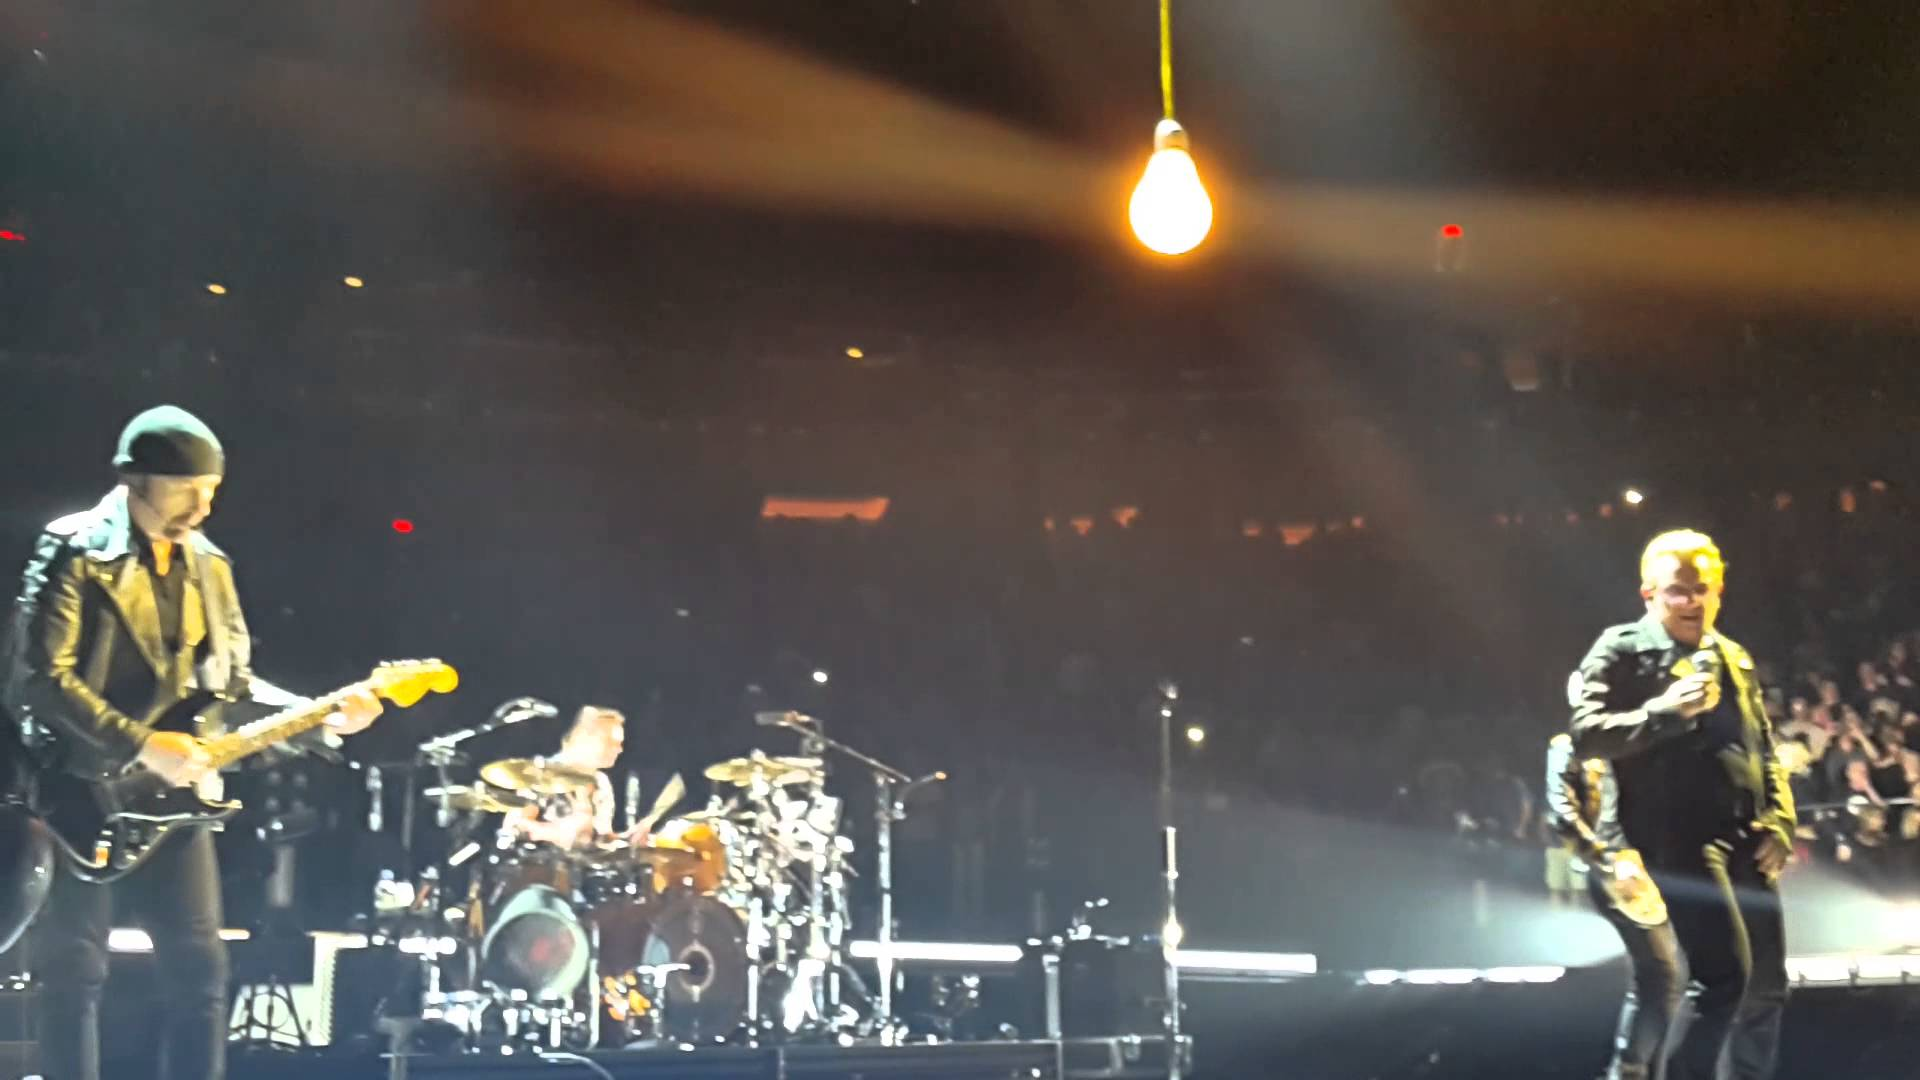 Watch: U2 perform live rarity 'Two Hearts Beat as One' live